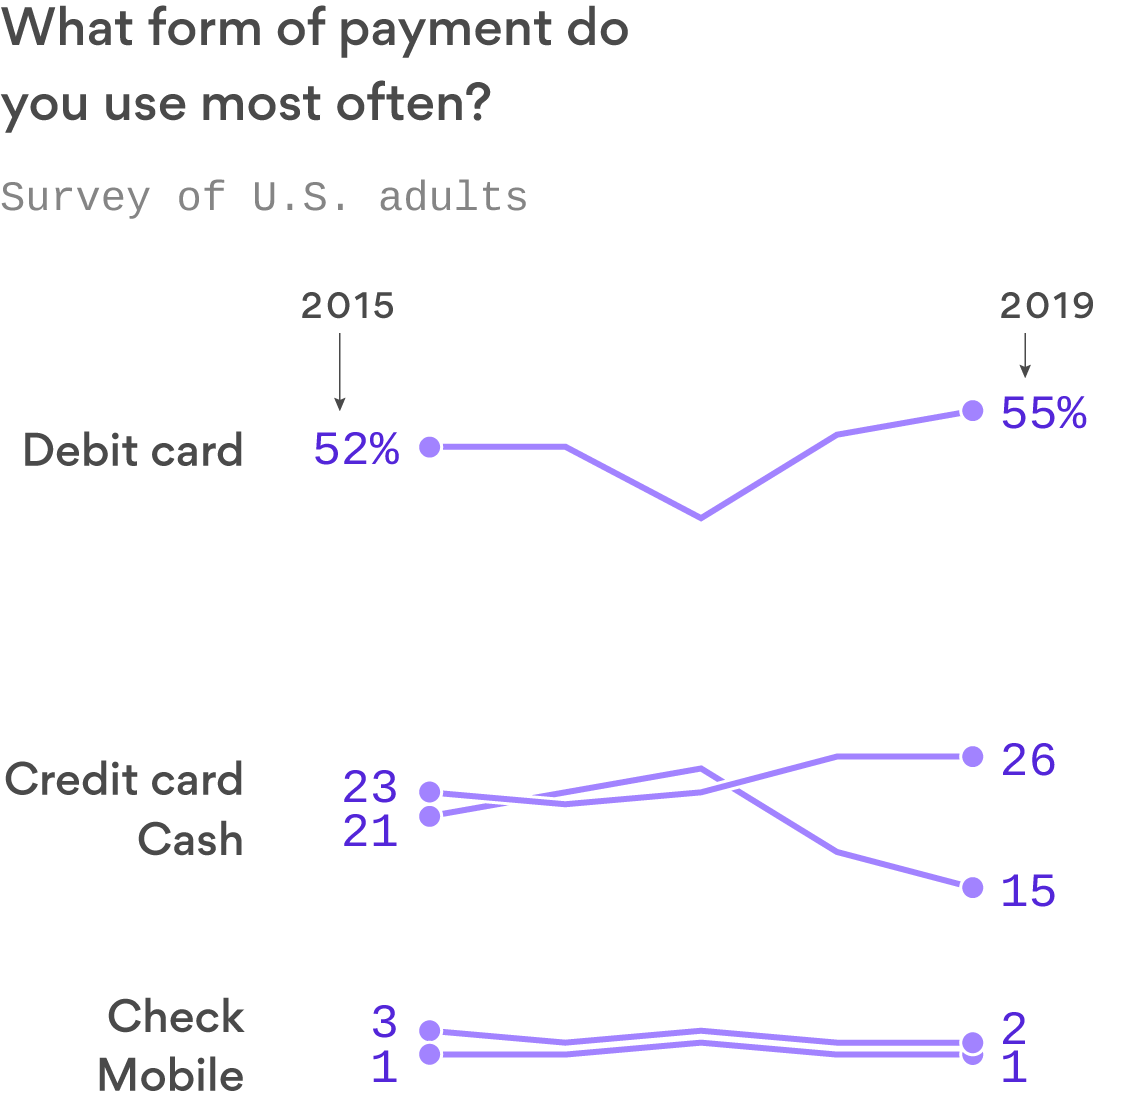 Americans use mobile payments less than checks, thanks to distrust of Big Tech